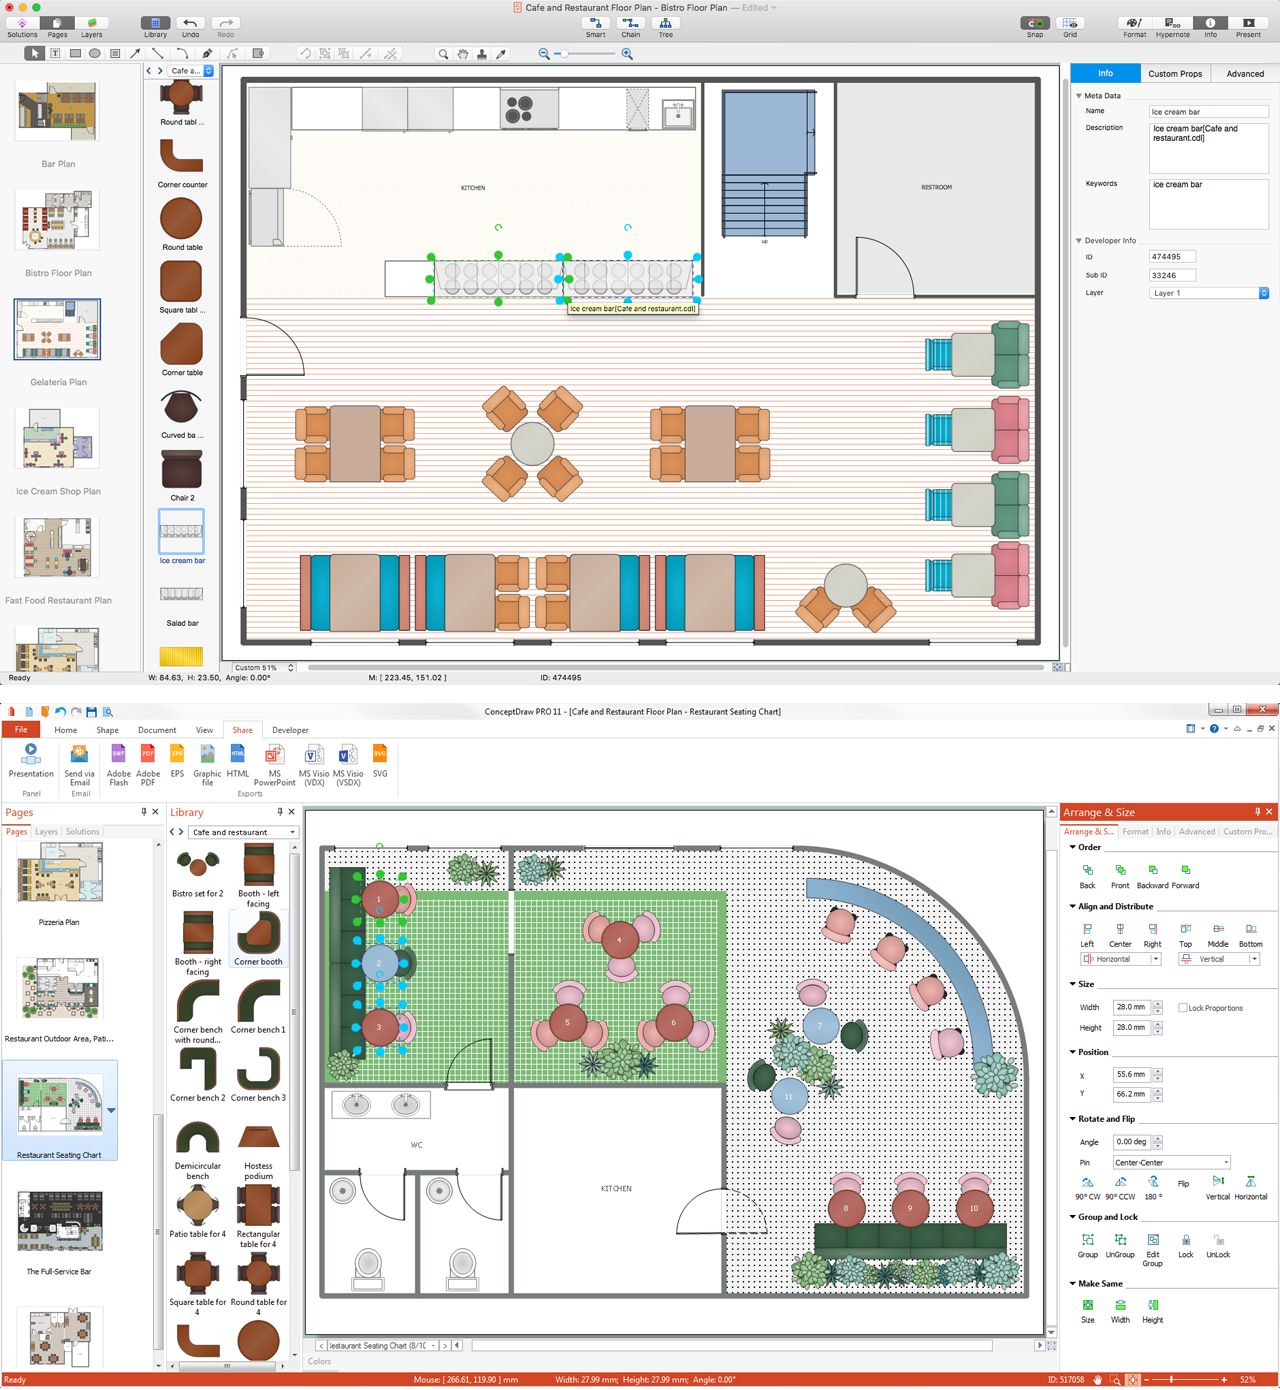 Interior design software building plan examples Building design software